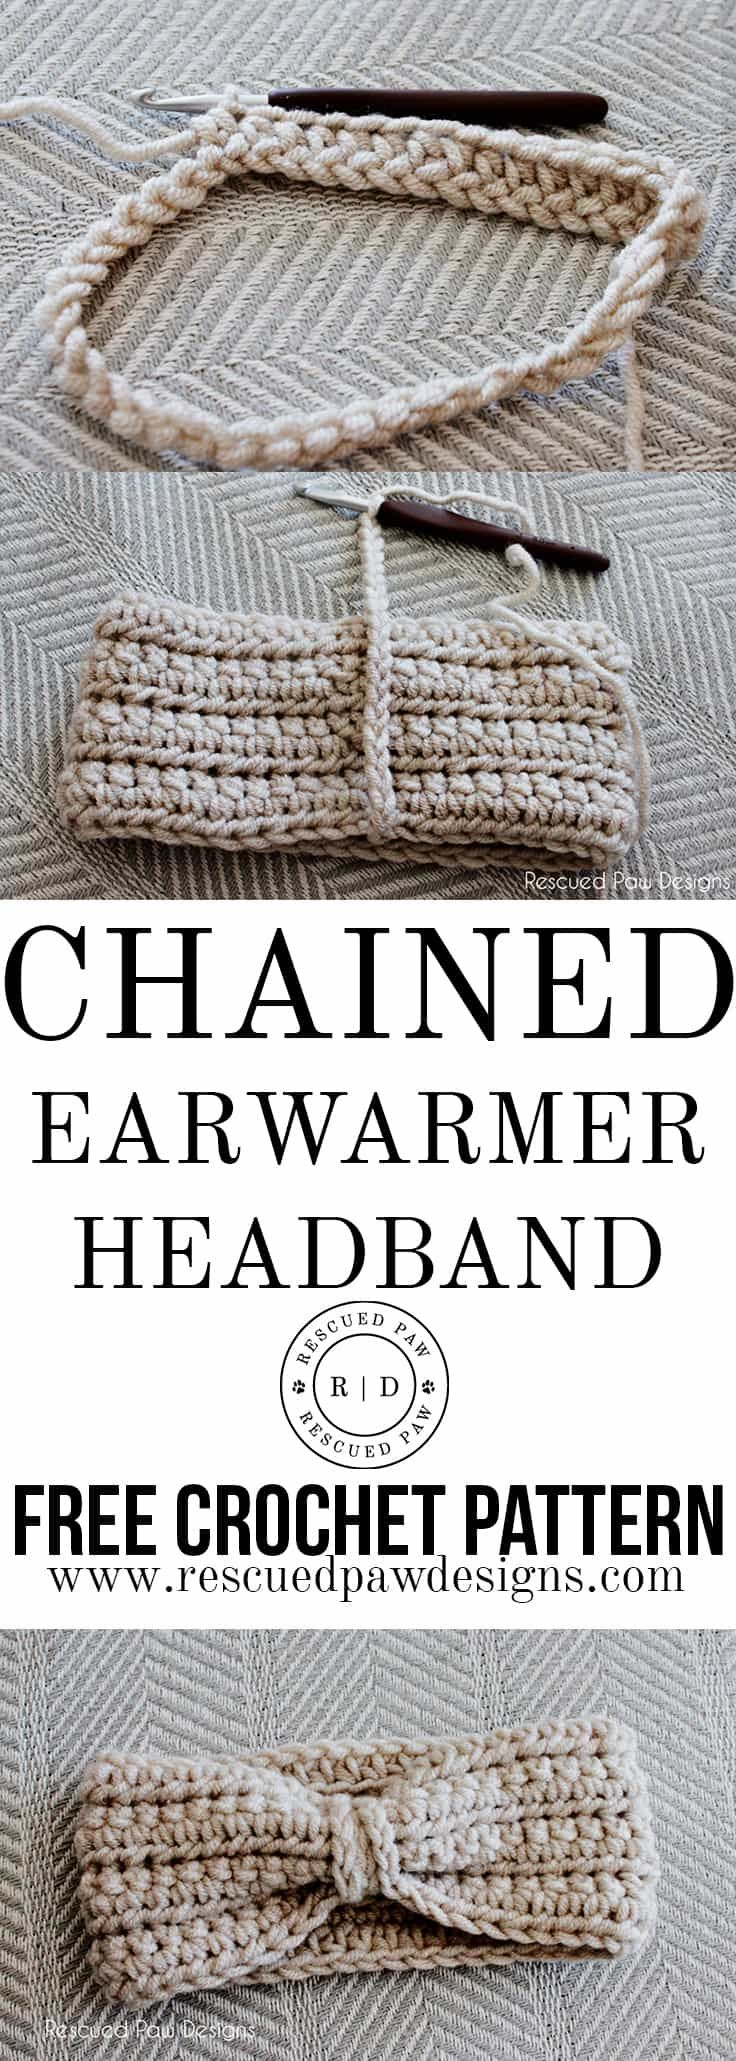 Chained Crochet Headband Pattern by Rescued Paw Designs